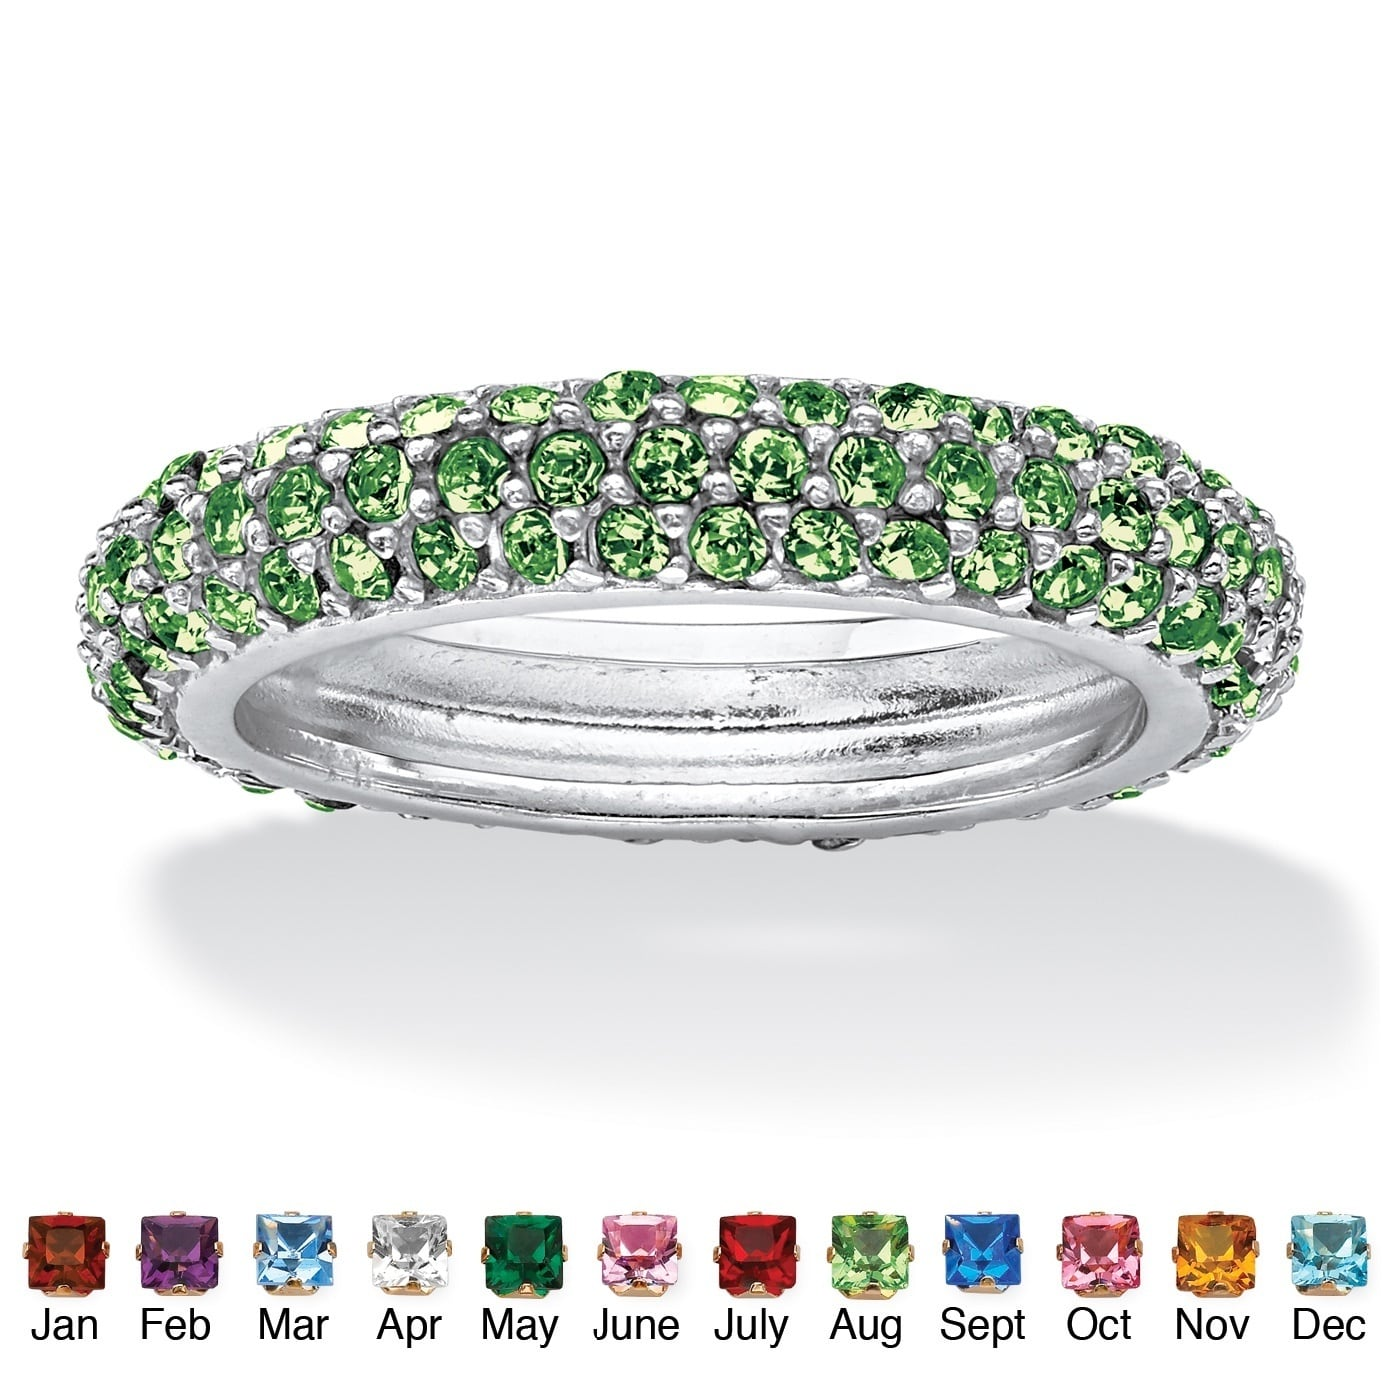 c june from rings buy claddagh jewellery wedding fishpond nz online q original co birthstone ring